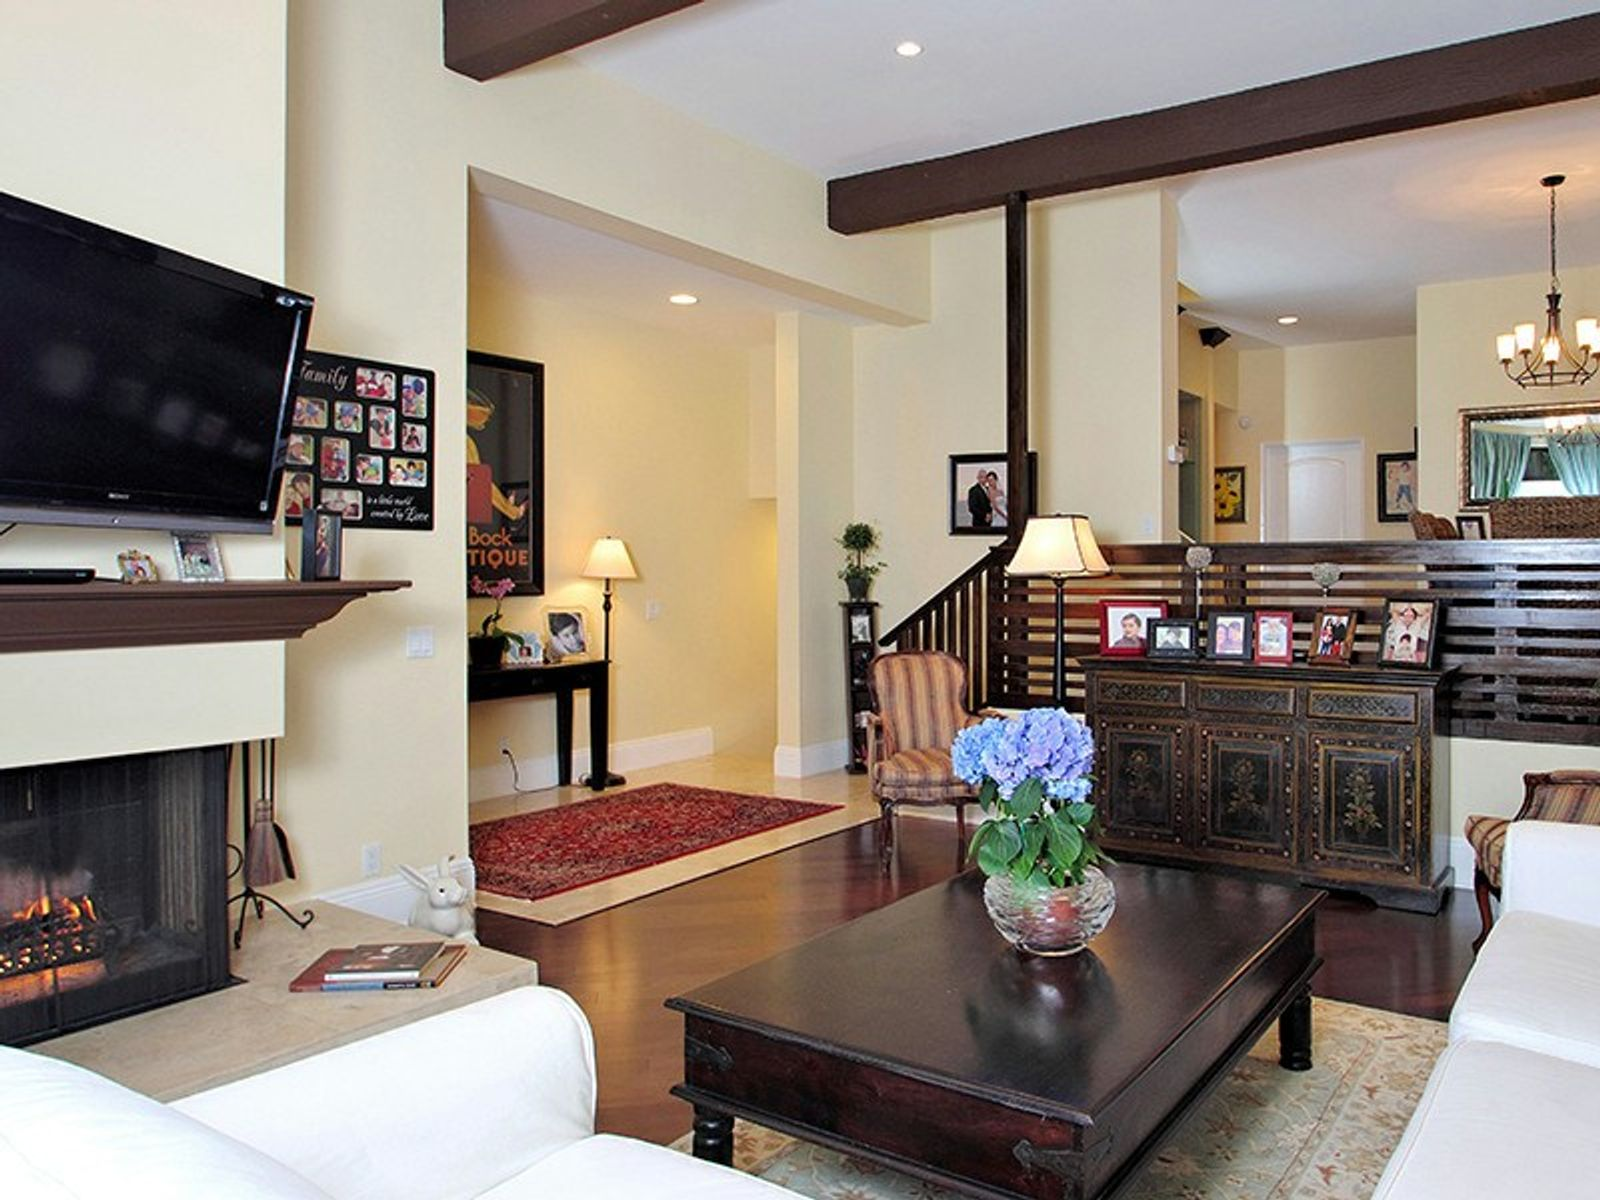 Emotional Spanish Townhome, Pacific Palisades CA Townhouse - Los Angeles Real Estate